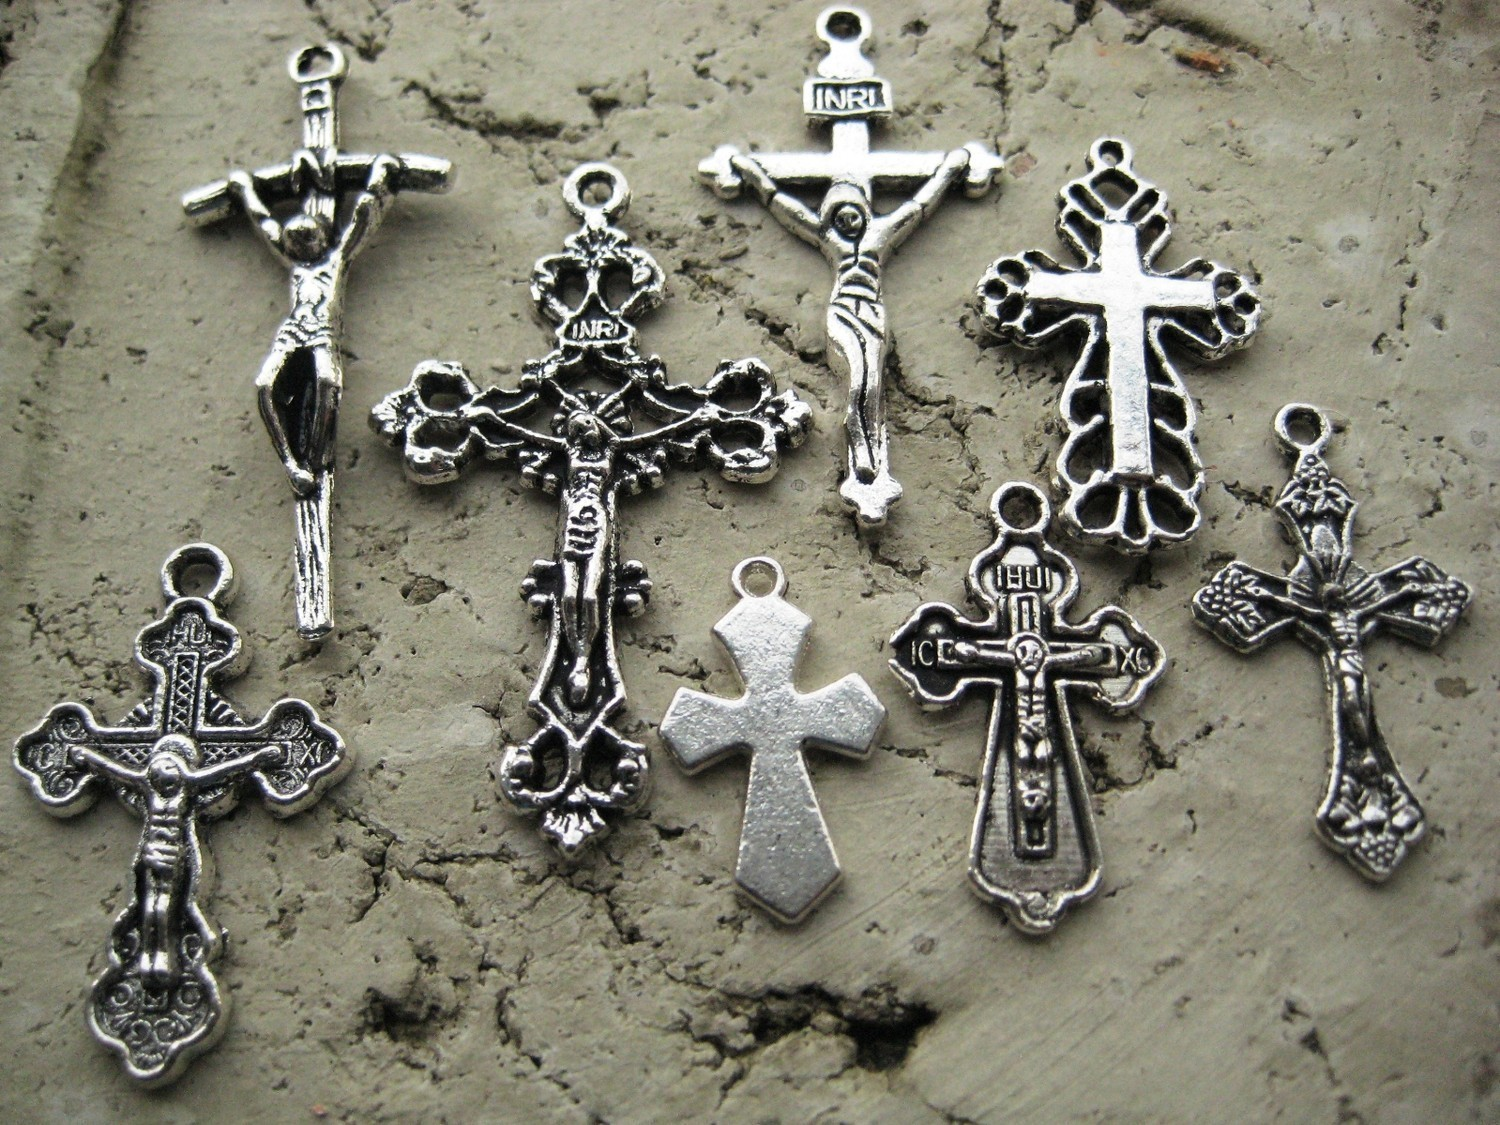 Why i am catholic for all the sacramentals crosses and crucifixes there is a difference between a cross and a crucifix a cross becomes a crucifix only when it bears an image of our lords sacred body biocorpaavc Choice Image